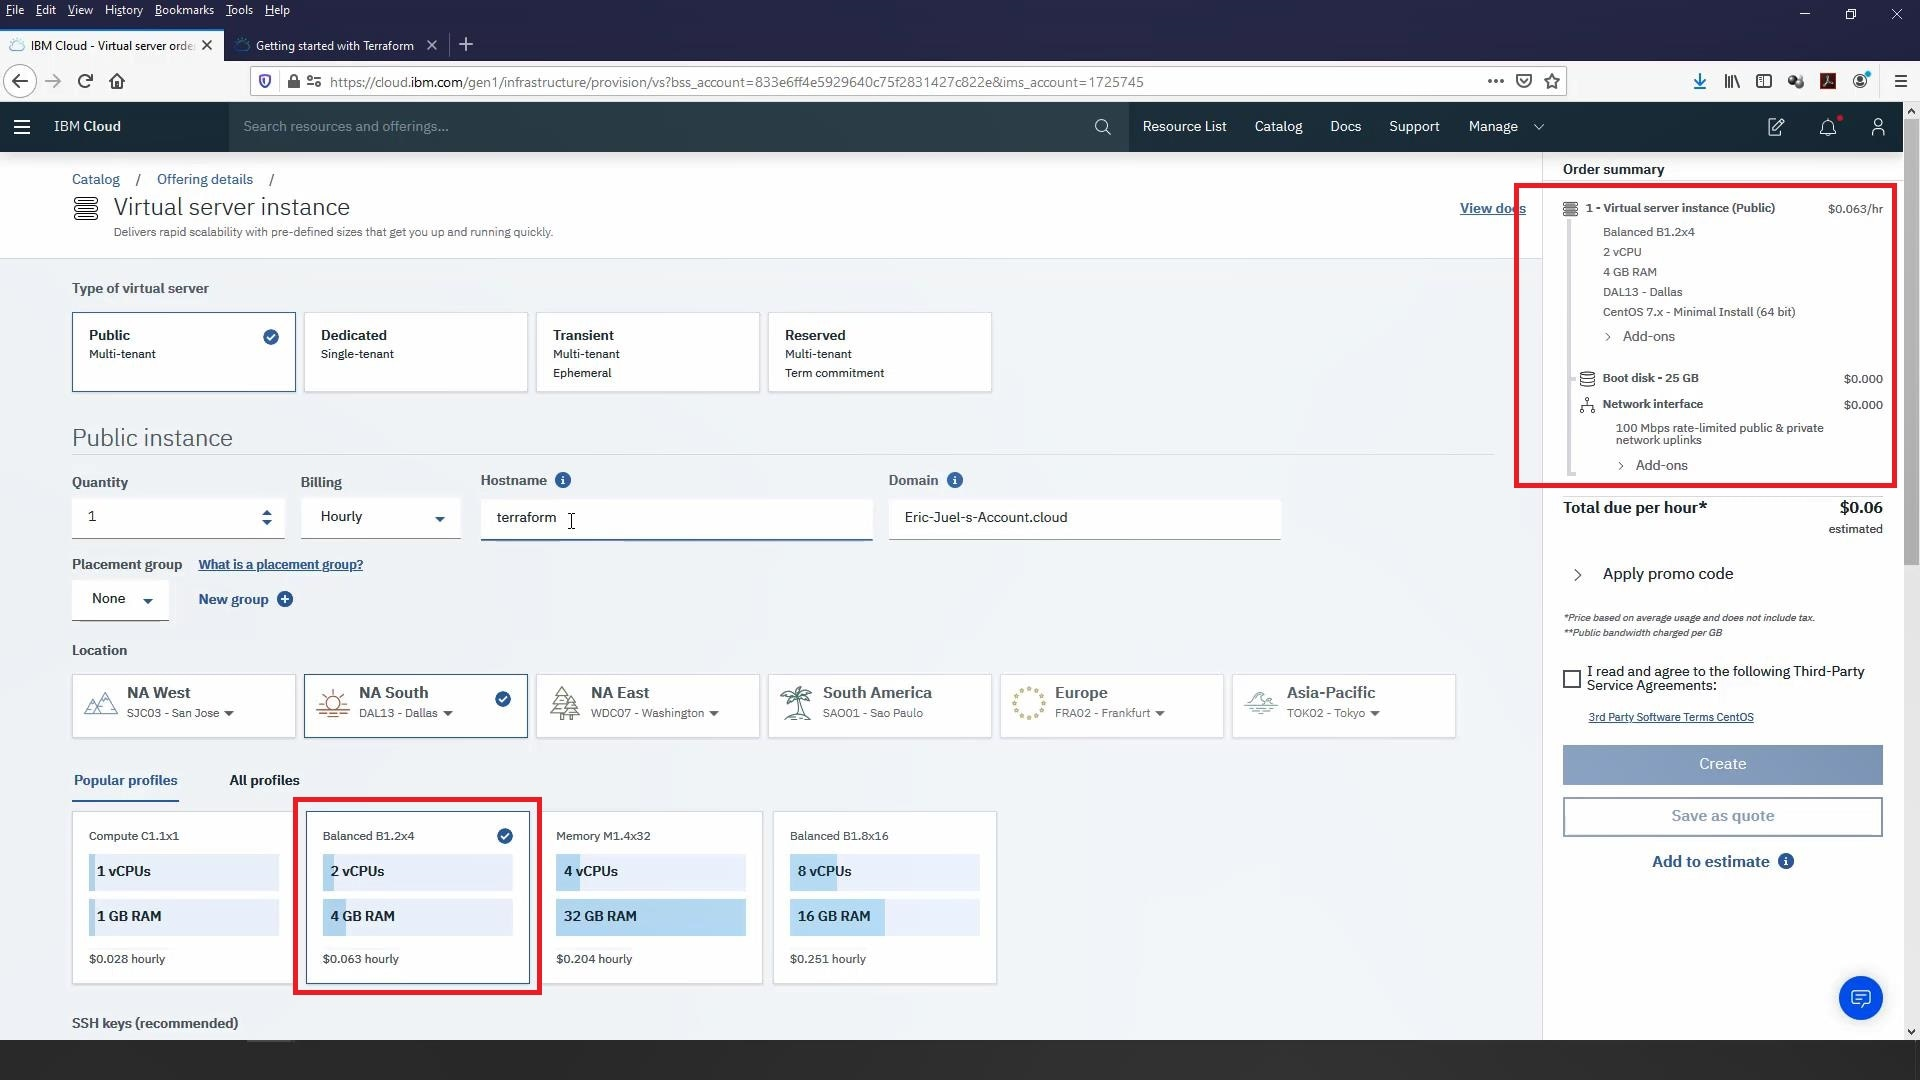 Log into your IBM Cloud account and provision a new VSI with the following specifications: